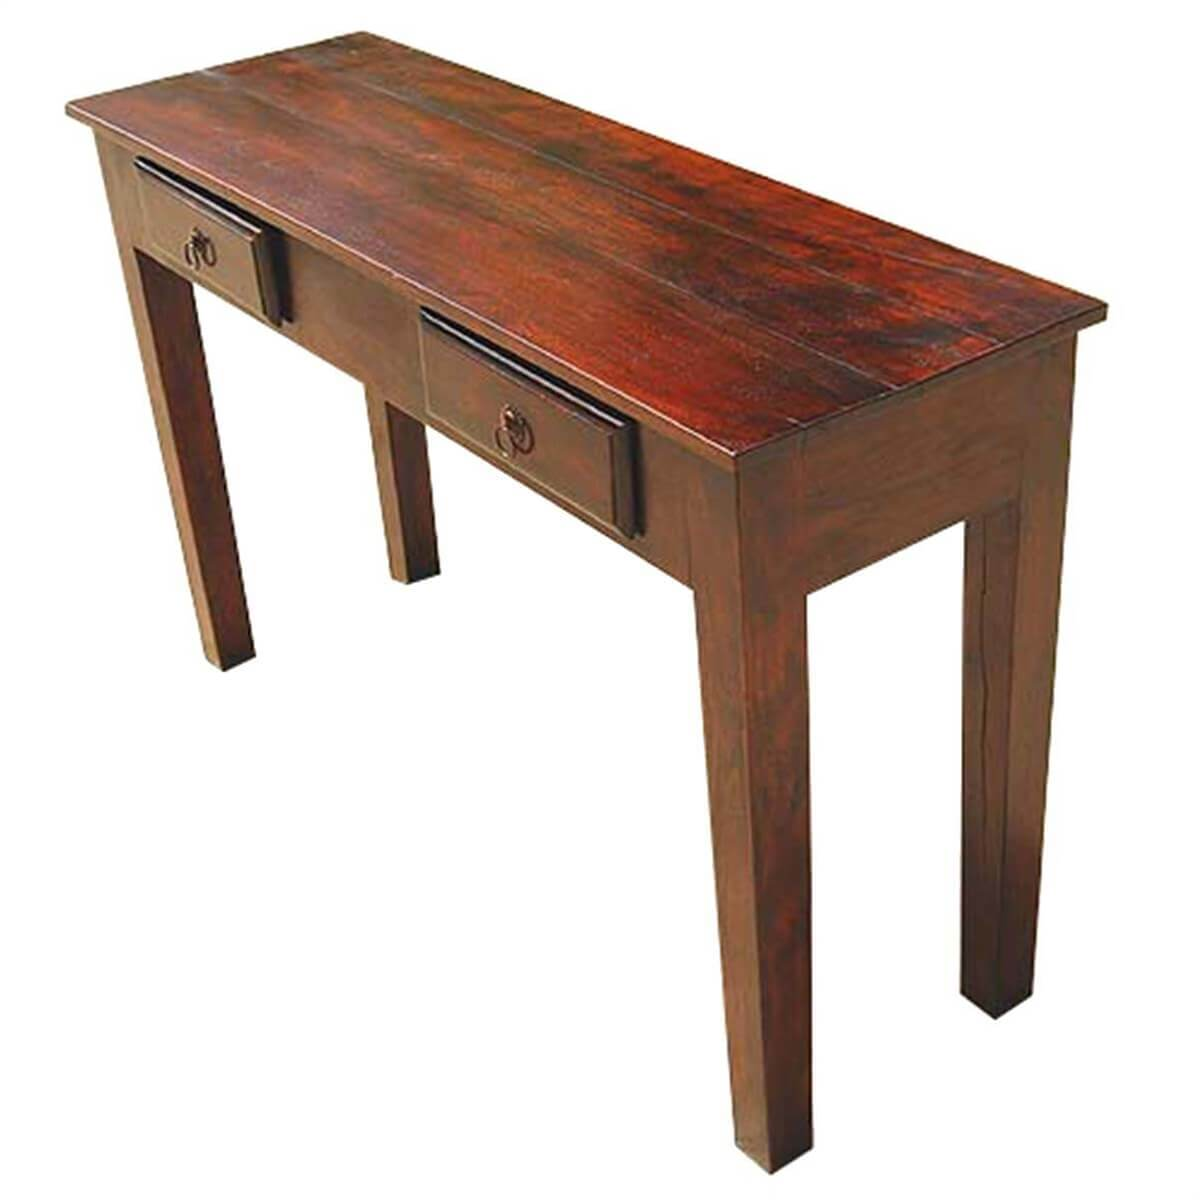 Foyer Entry Table : Wood storage drawers console hall entry way foyer table